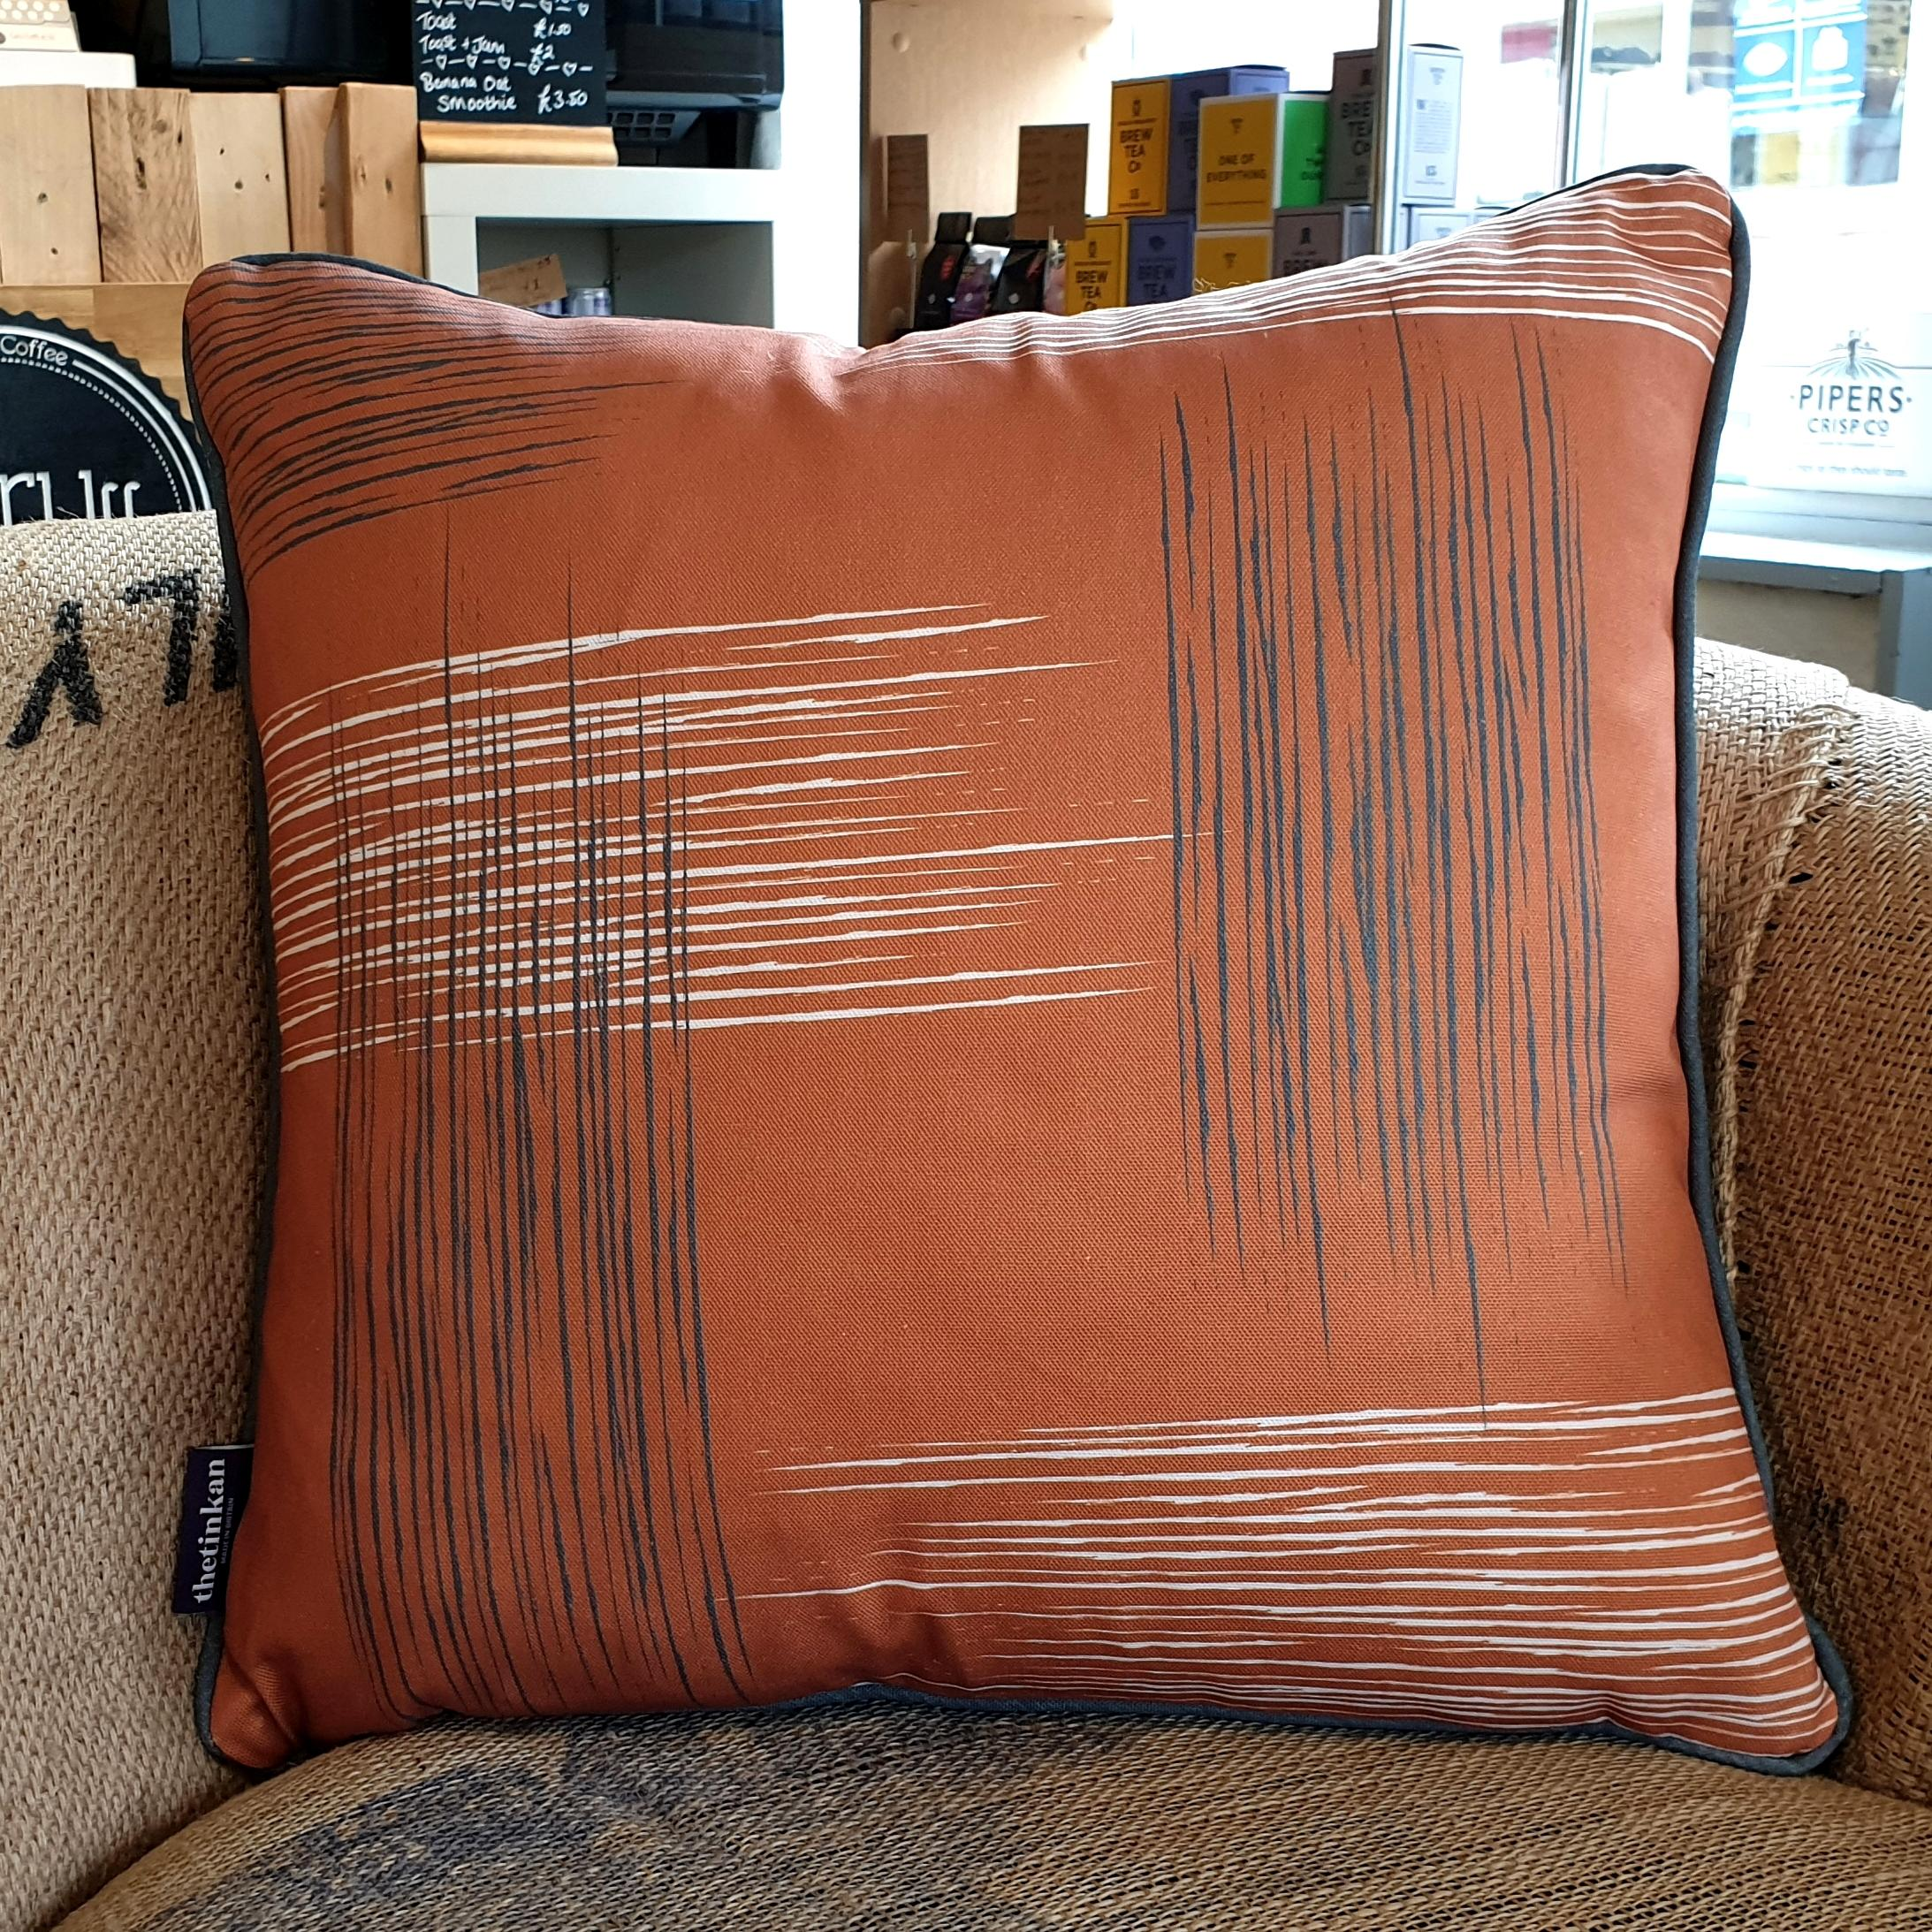 Double-sided warm rust orange 45cm square retro themed cushion with artistic grey and white shards and grey handcrafted piping designed by thetinkan. Available with an optional luxury cushion inner pad. VIEW PRODUCT >>